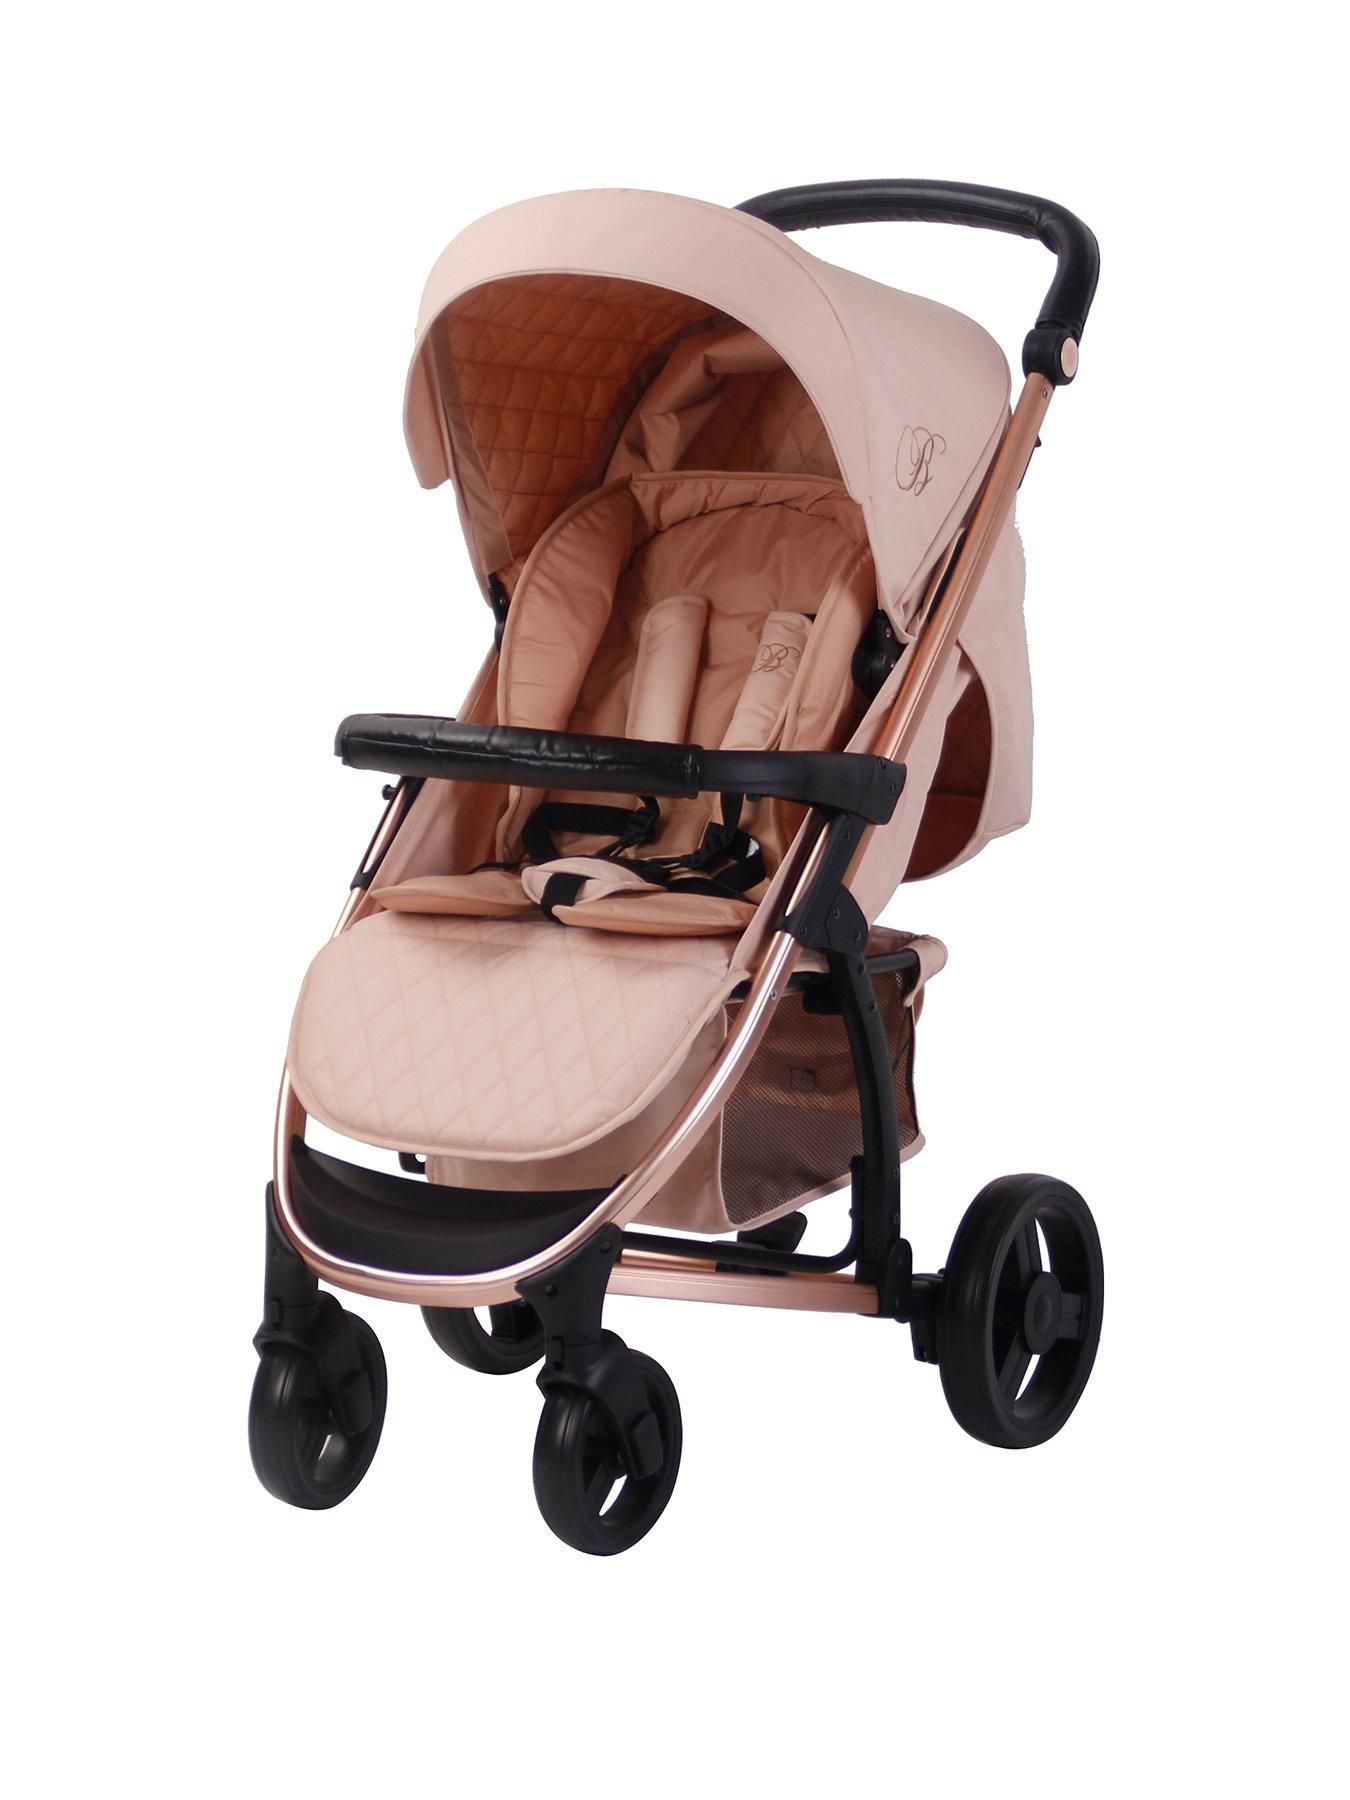 Billie Faiers MB200 Rose Gold & Blush Pushchair Baby